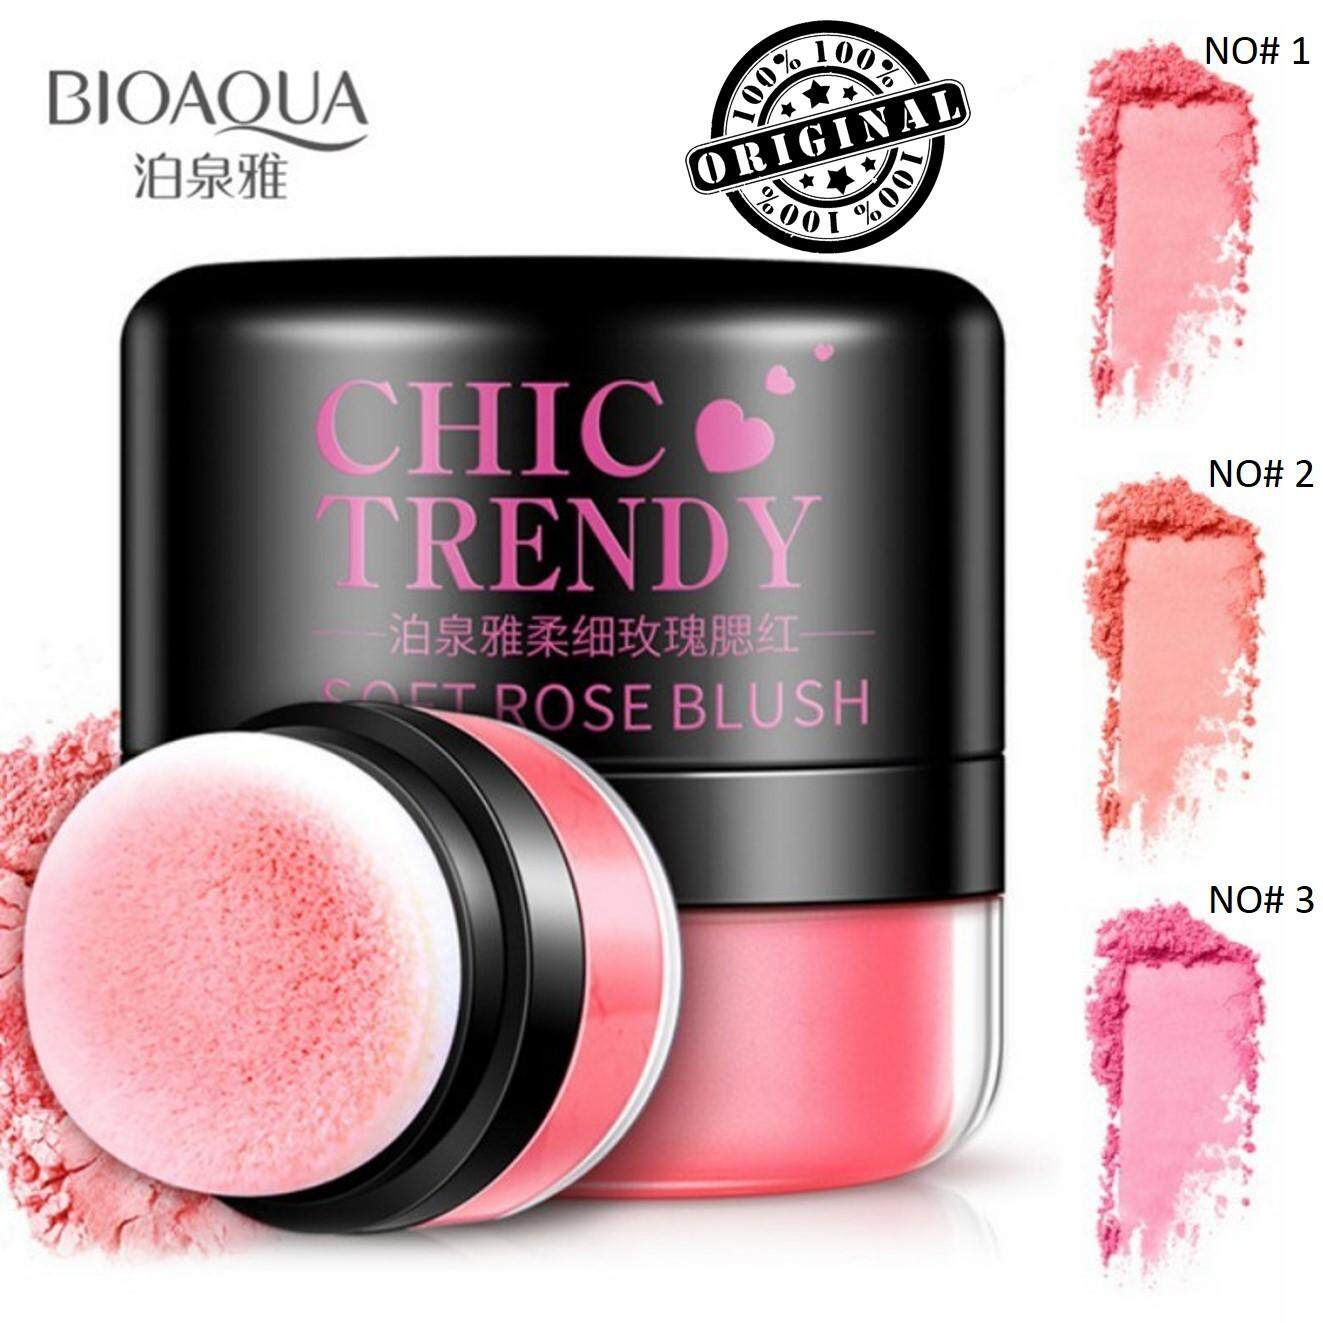 [ 100% Original ] Bioaqua Chic Trendy Blush Soft Rose Blusher Powder Easy Makeup Puff - 3 Colours By La Belle..